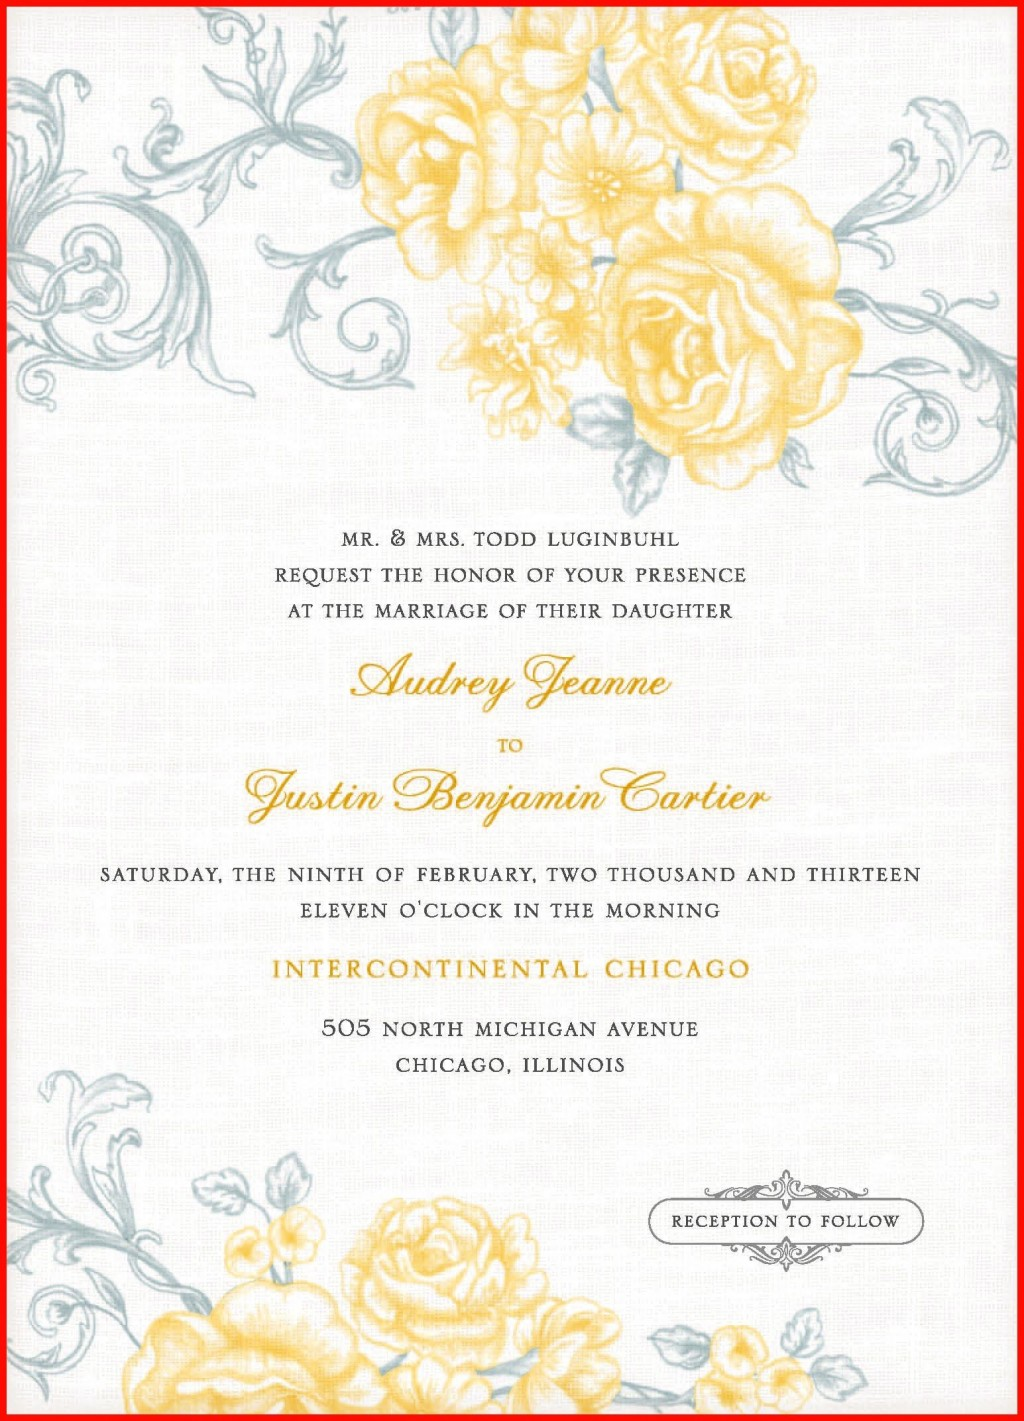 002 Incredible Free Invitation Template Word Design  Wedding For Tamil Christma PartyLarge